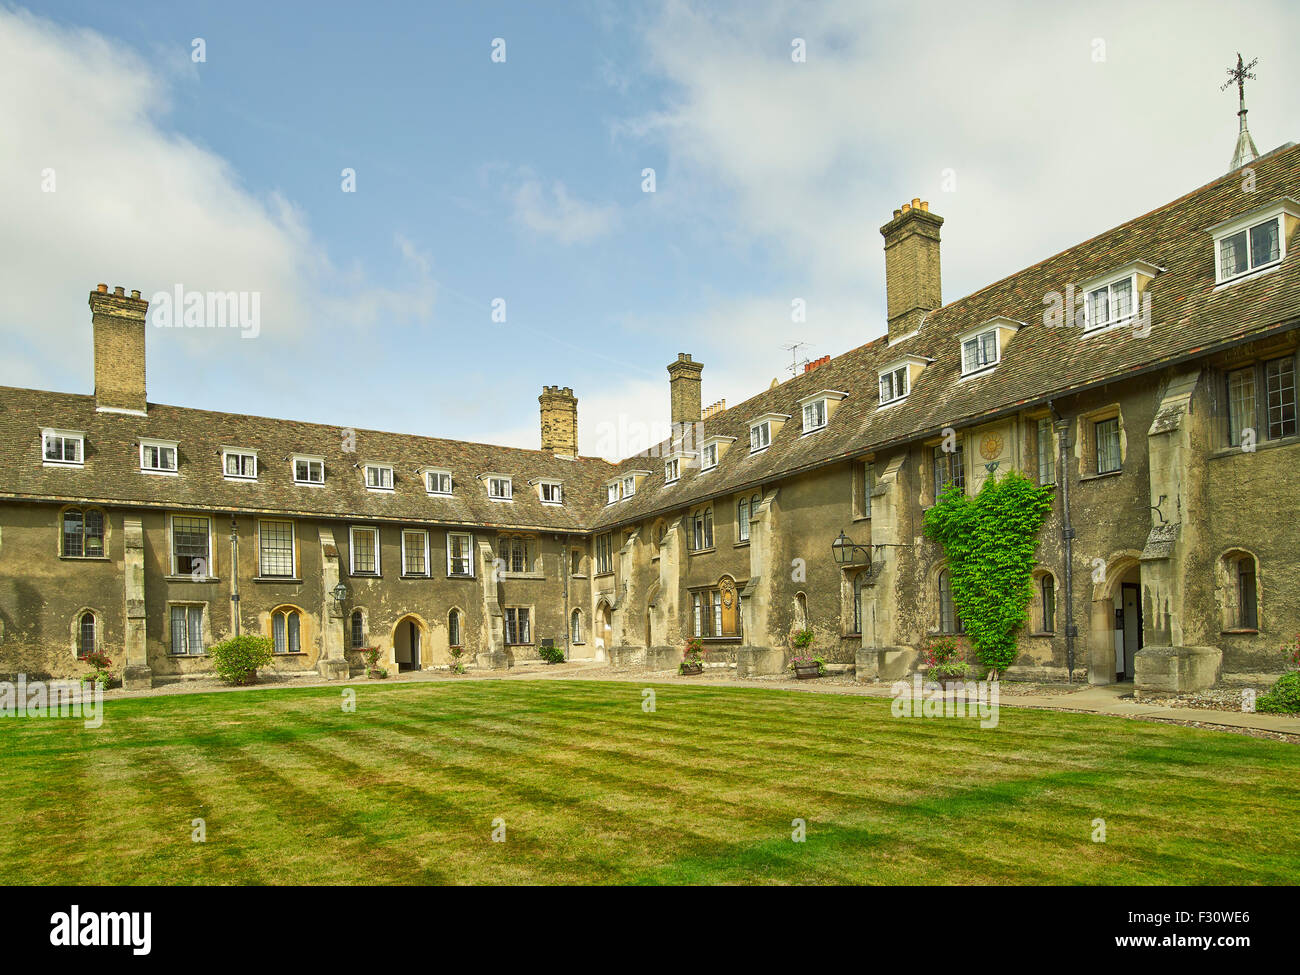 Cambridge, Corpus Christi College, Old Court - Stock Image